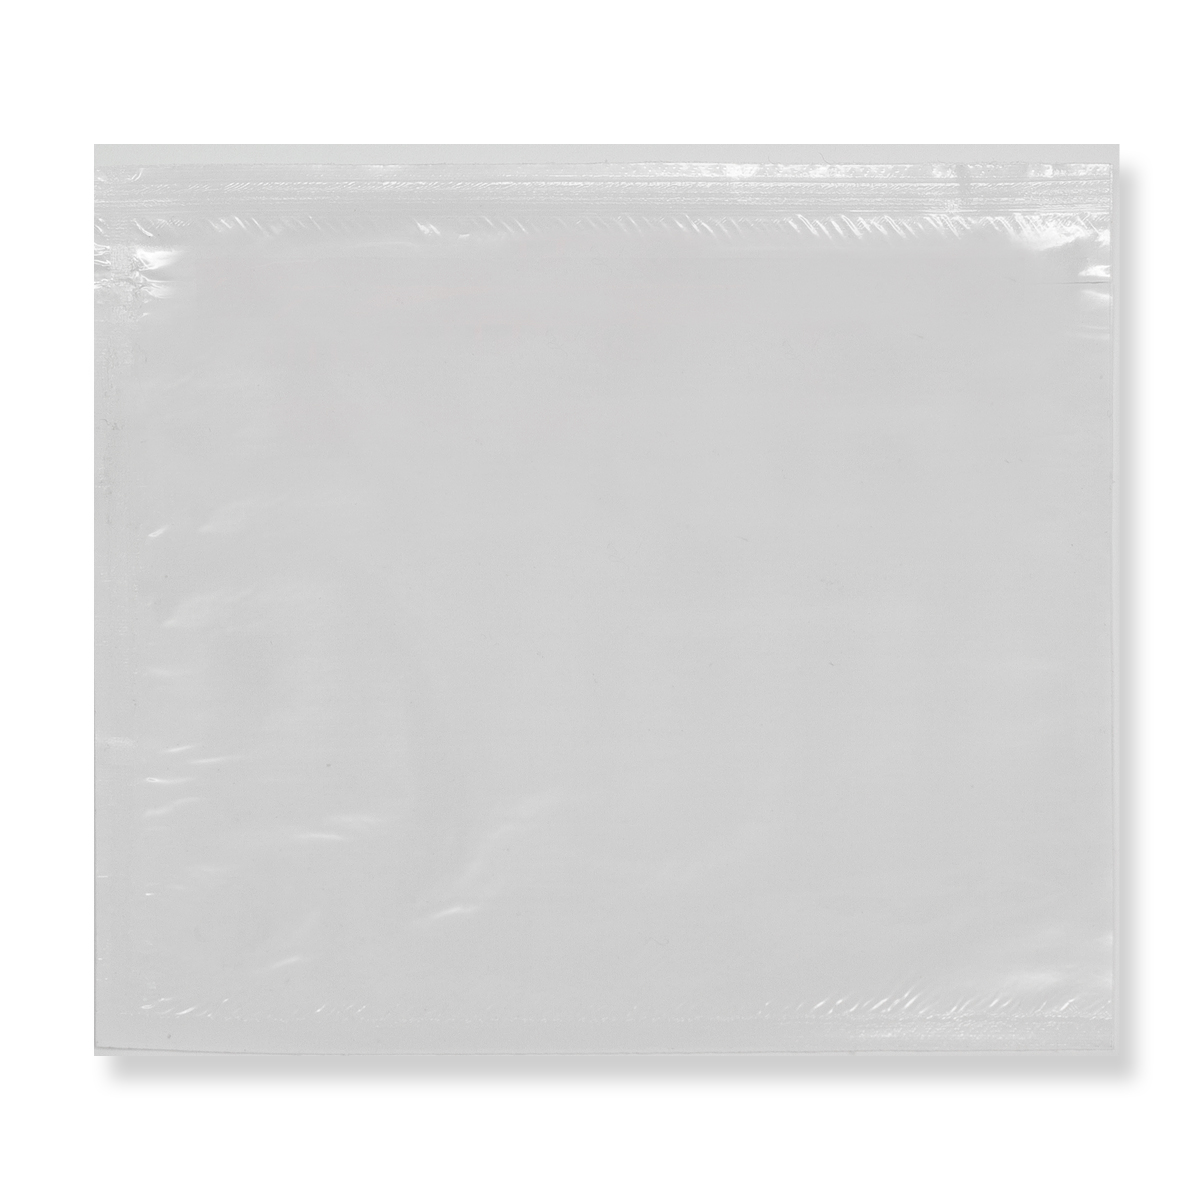 C7 CLEAR DOCUMENTS ENCLOSED WALLETS (81 x 113mm)